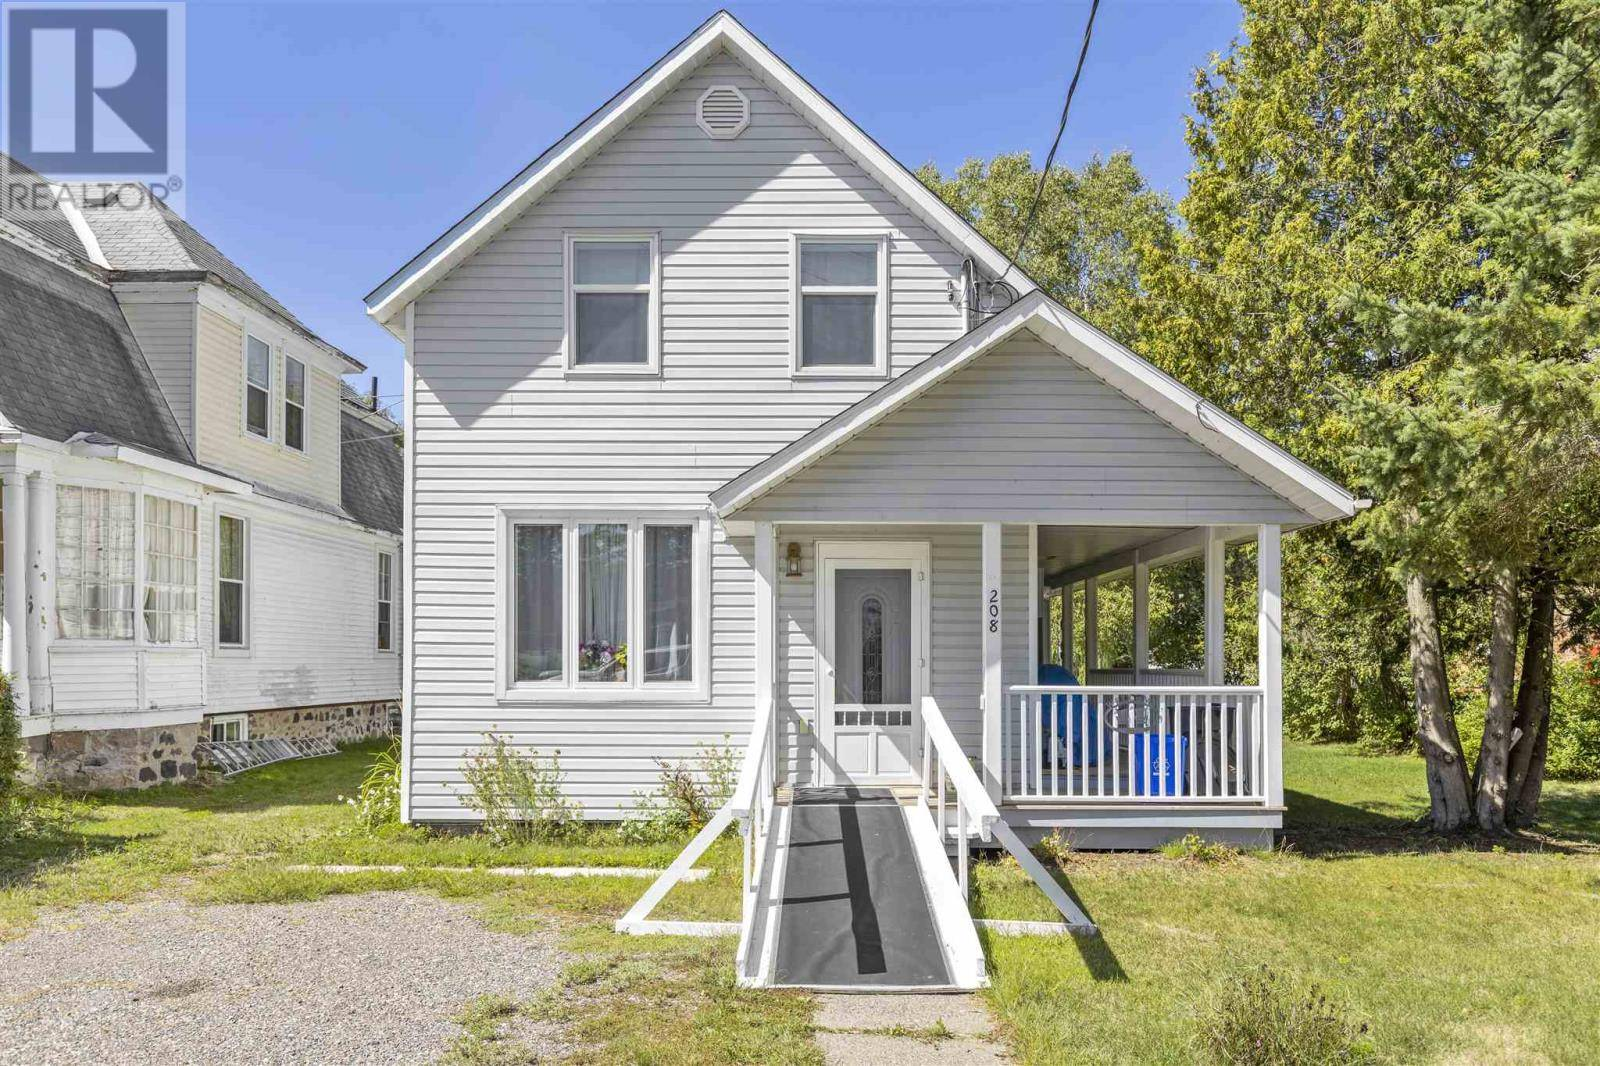 House for sale at 208 Water St Thessalon Ontario - MLS: SM126562